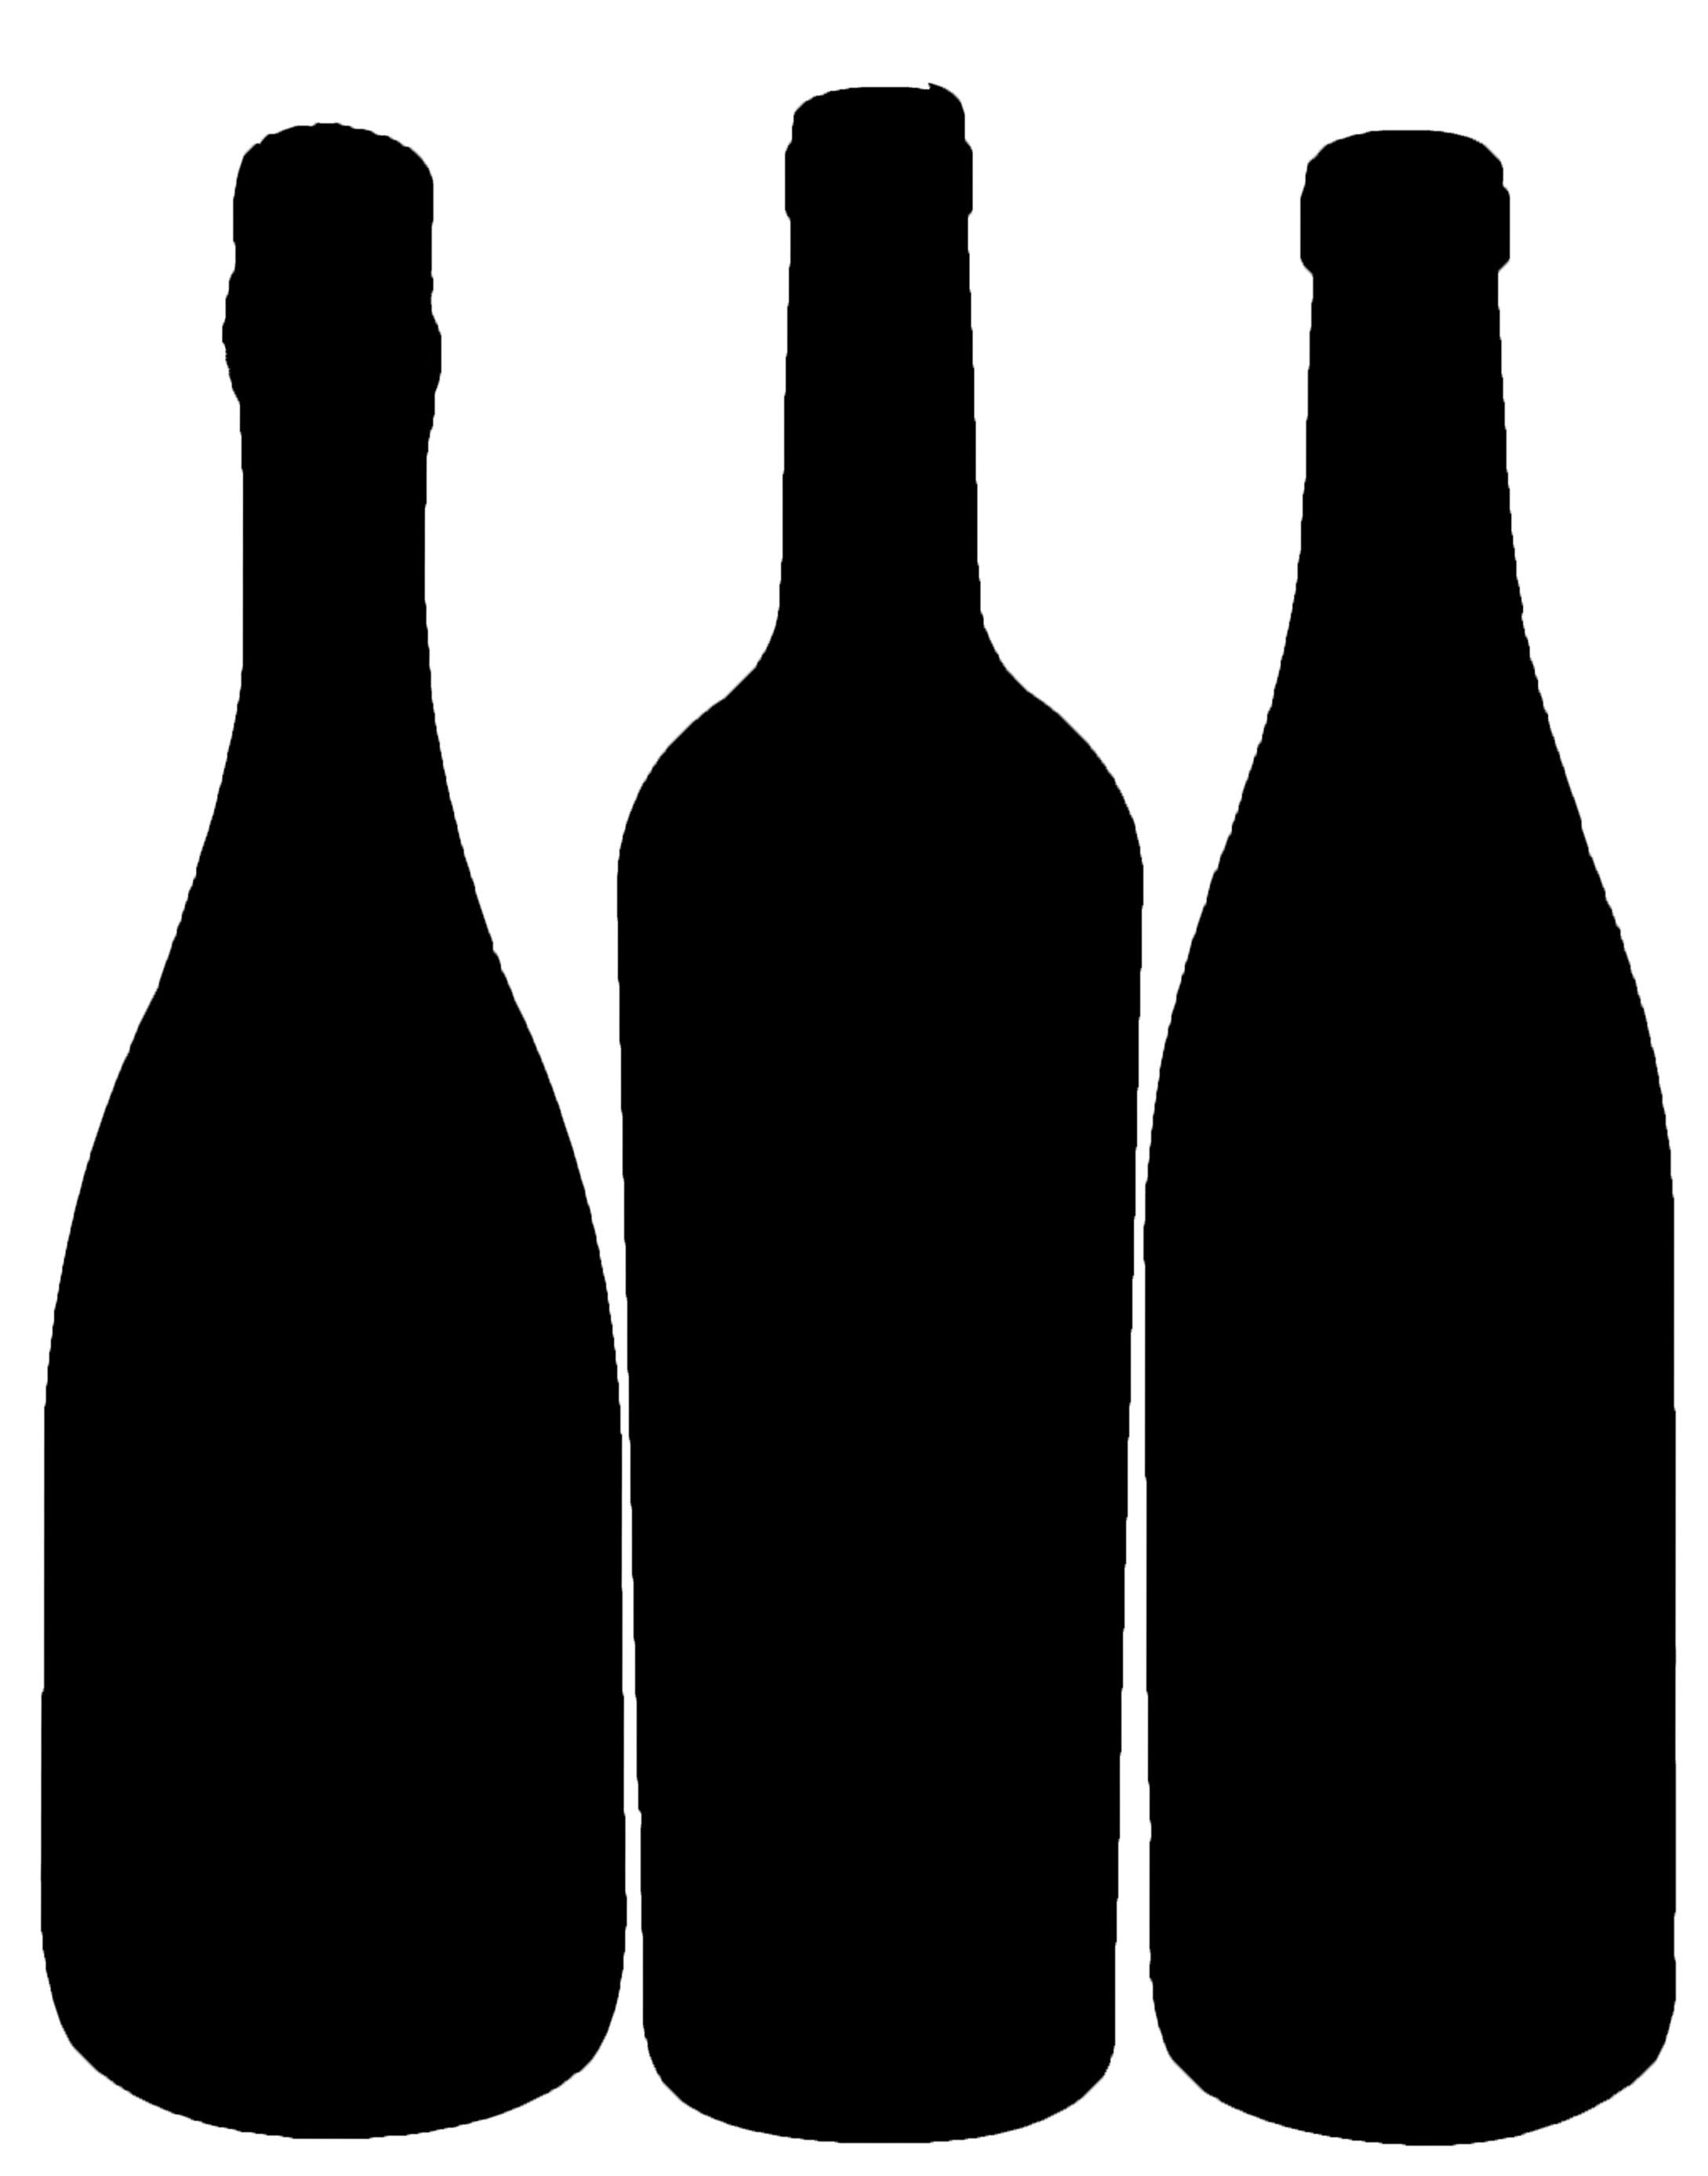 2178x2774 Bottle Silhouette Cameo Svg Silhouettes, Bottle